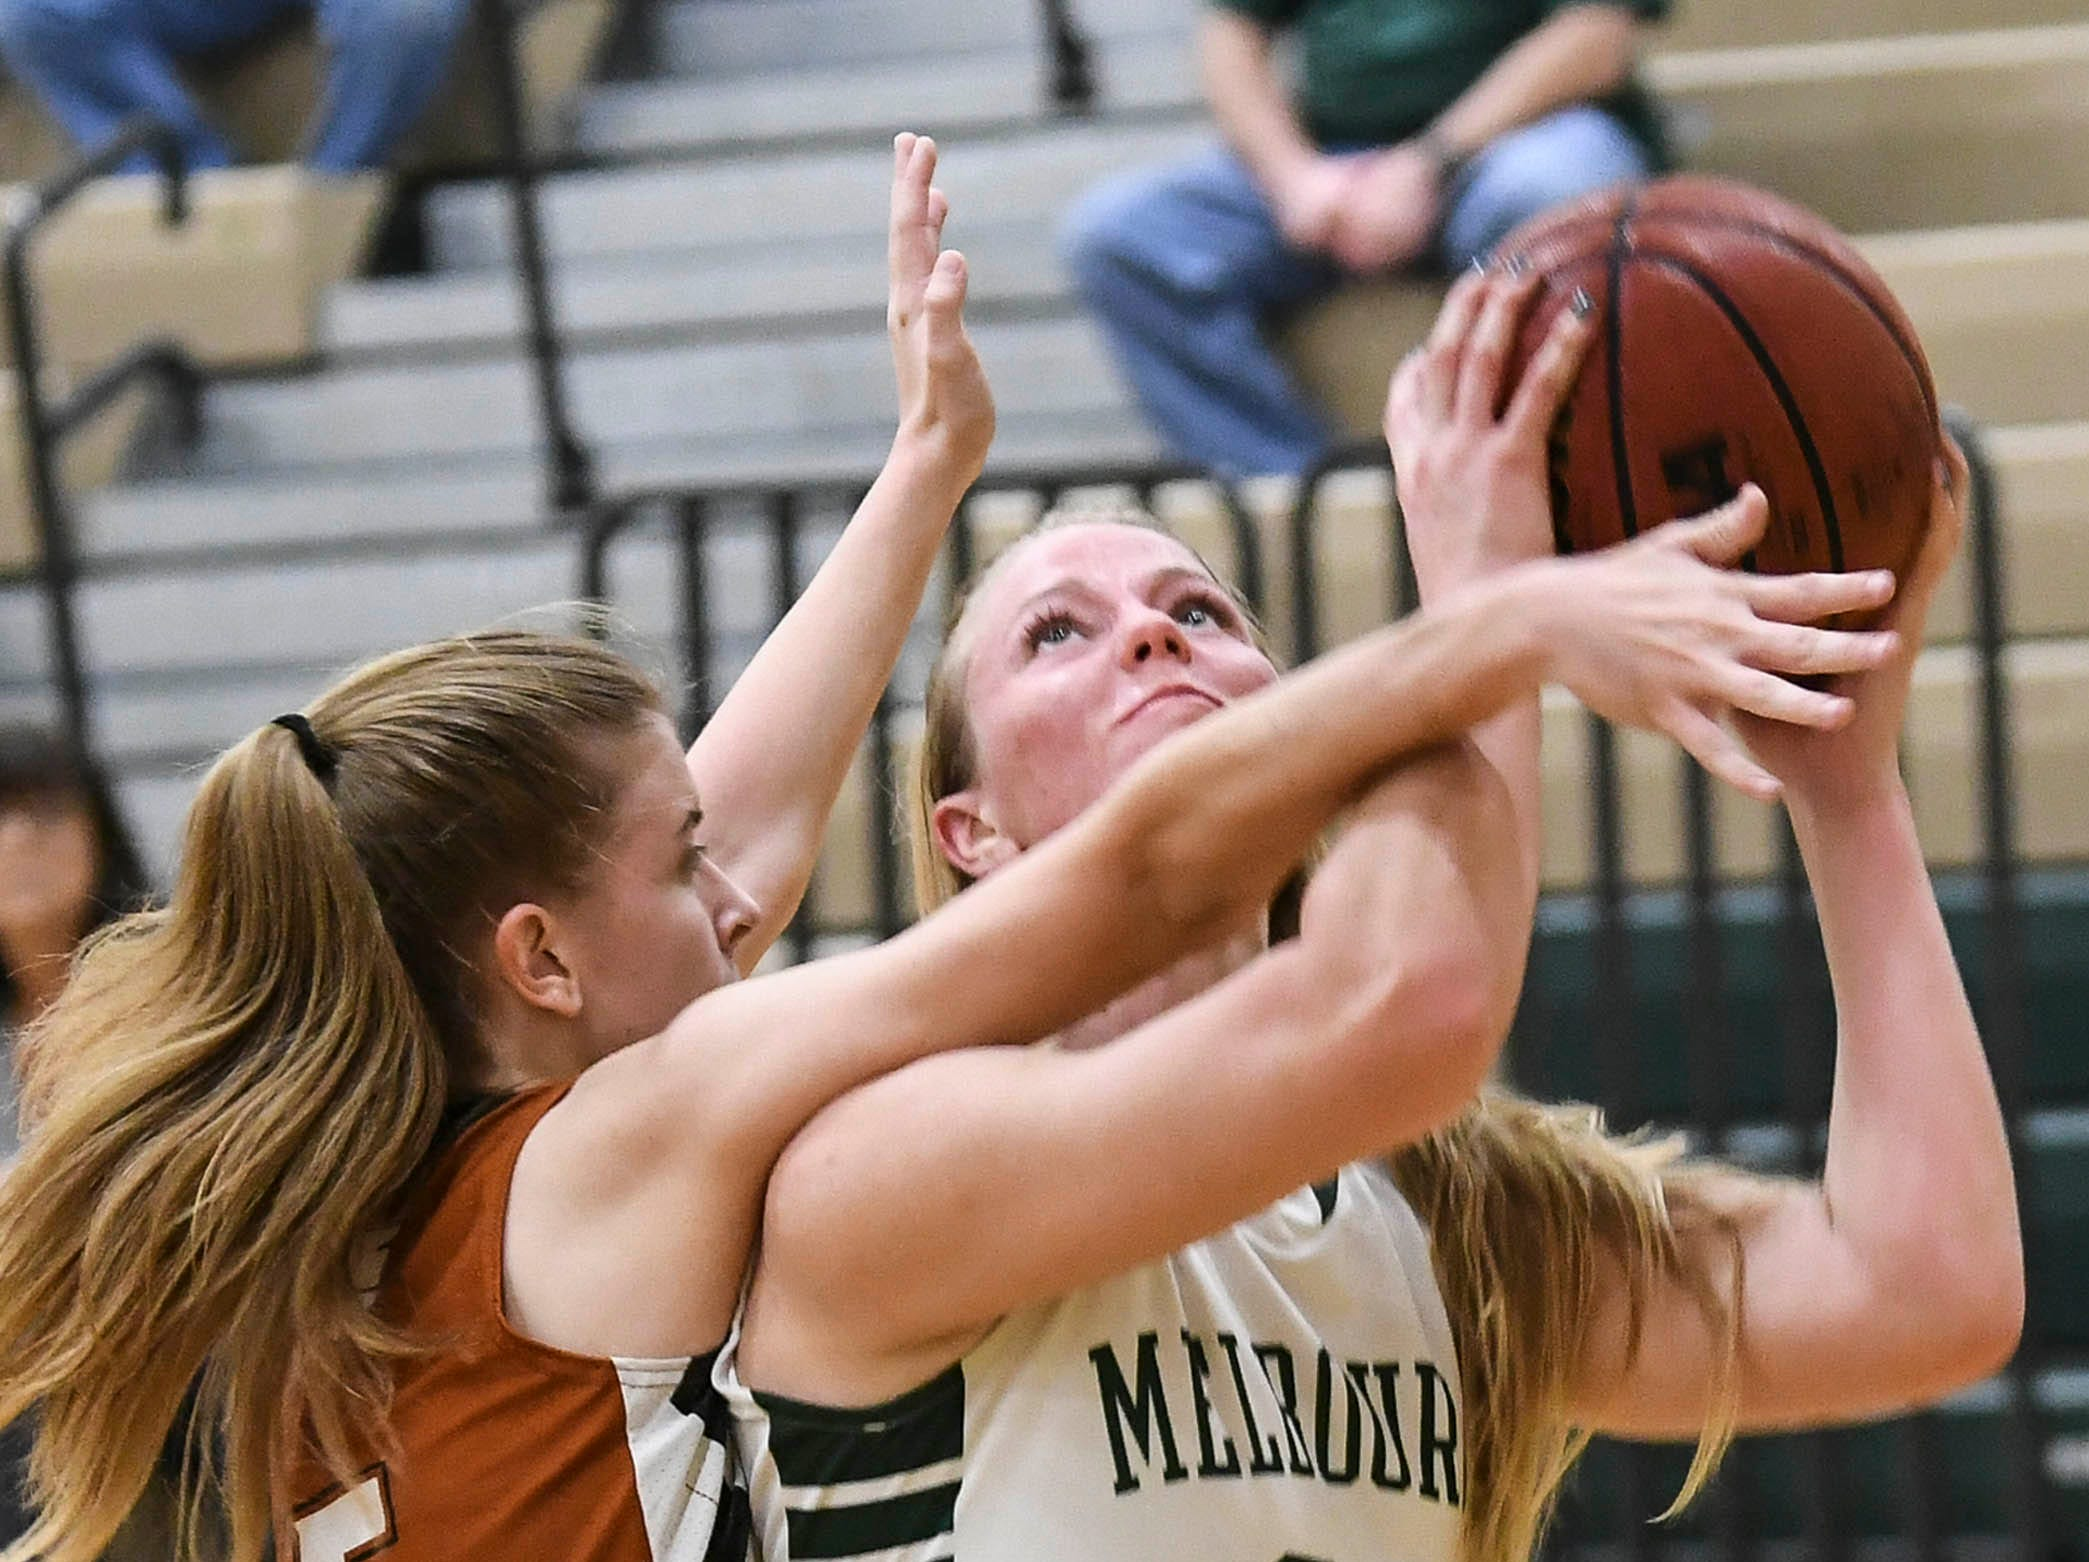 Morgan Matheny of Harmony fouls Ava Rowell of Melbourne during Tuesday's game in Melbourne.